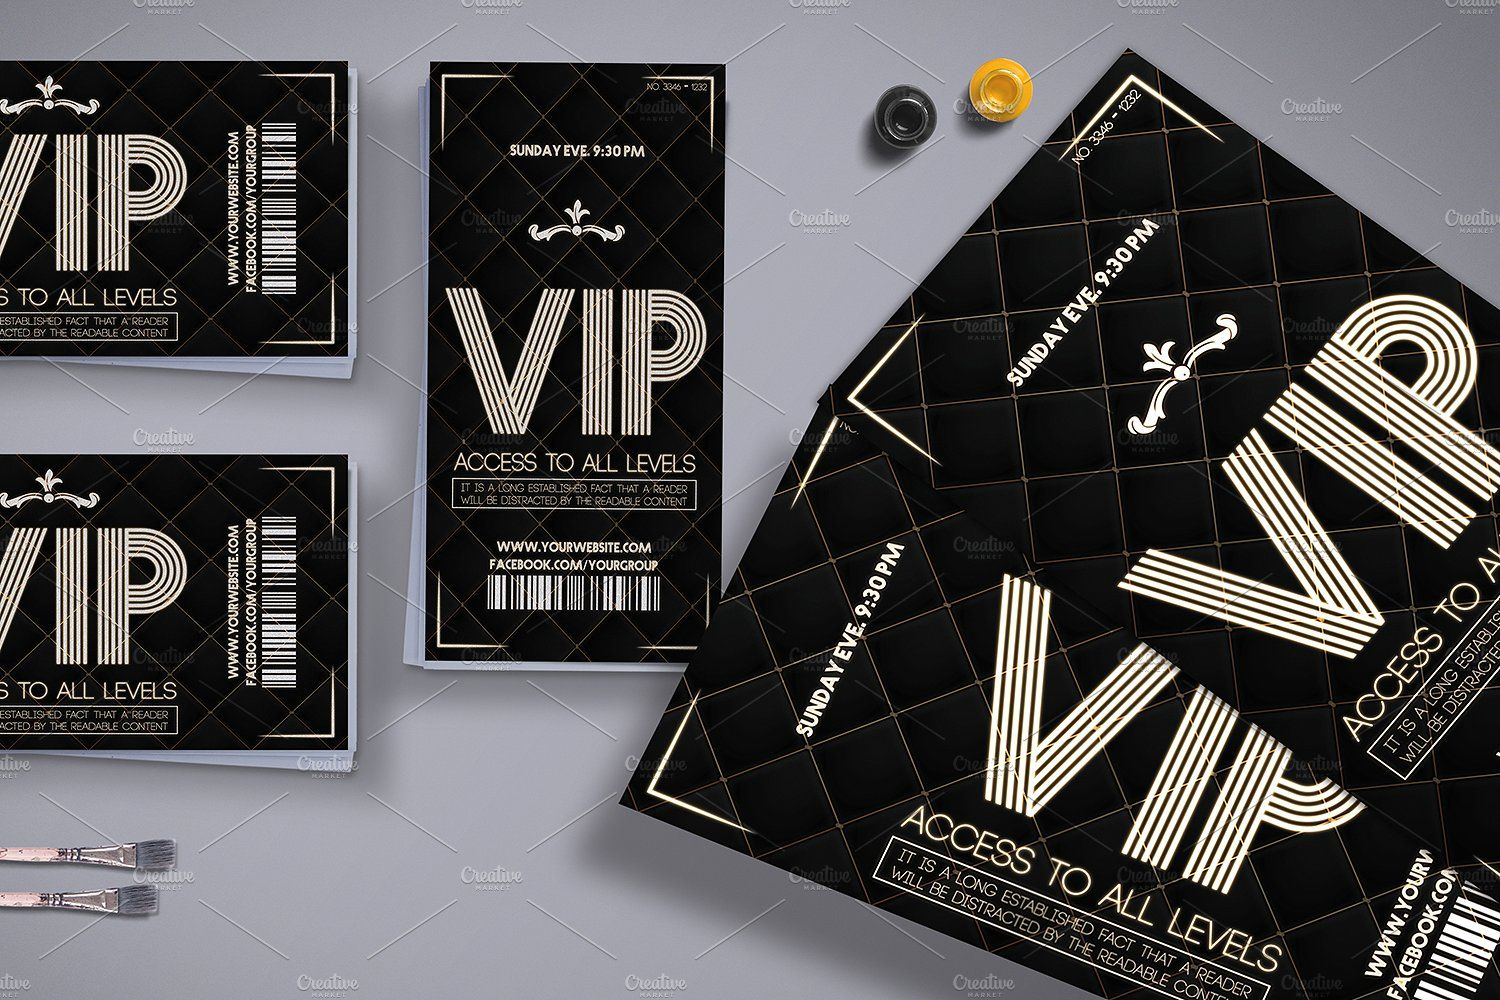 Luxury Vip Pass Card Vip Card Design Vip Card Cards